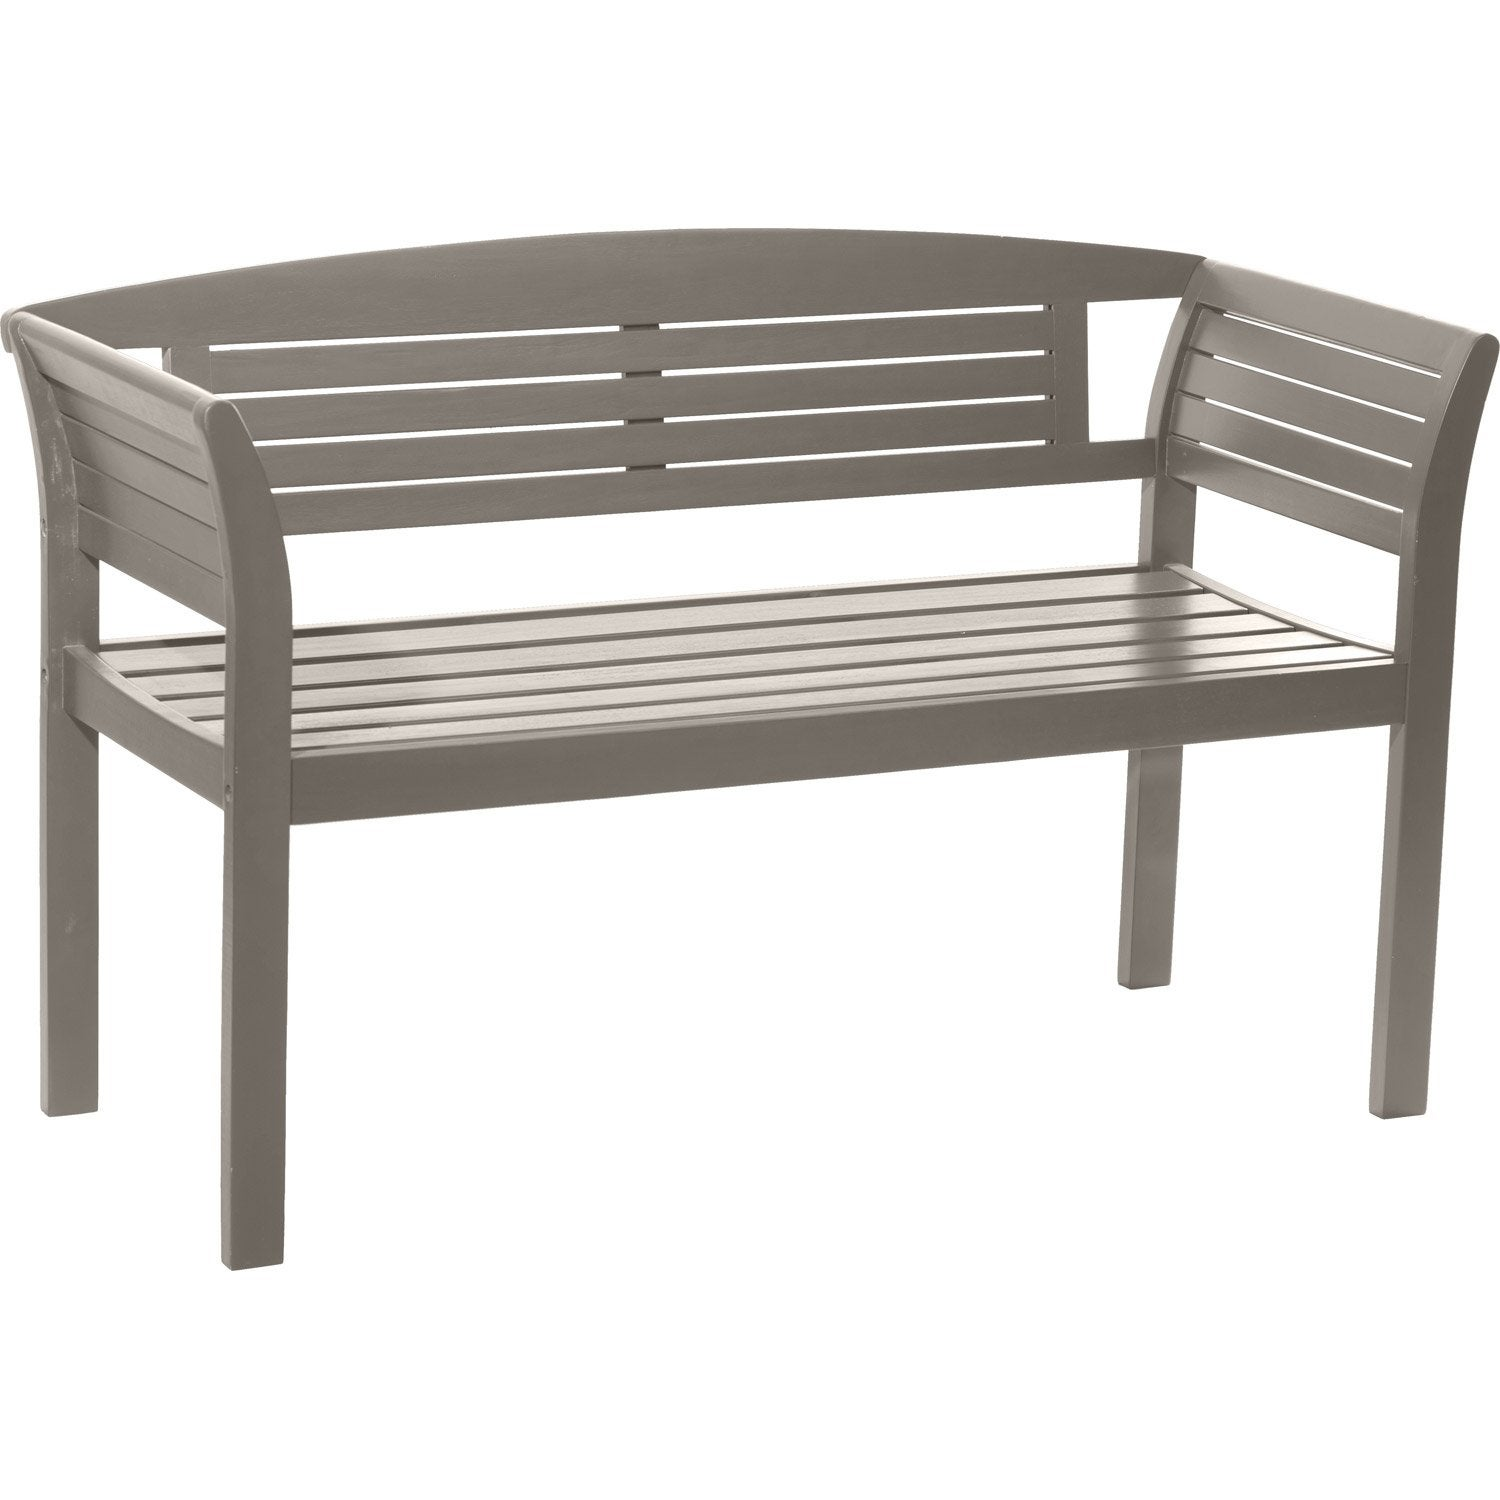 Banc 2 places de jardin en bois new york r glisse leroy for Banc jardin leroy merlin